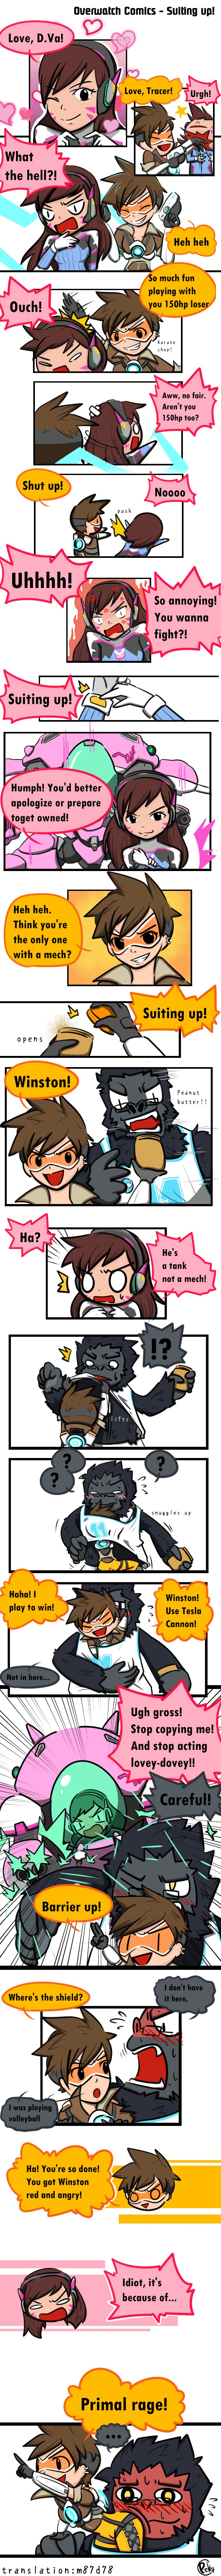 Overwatch Comics: Suiting up!